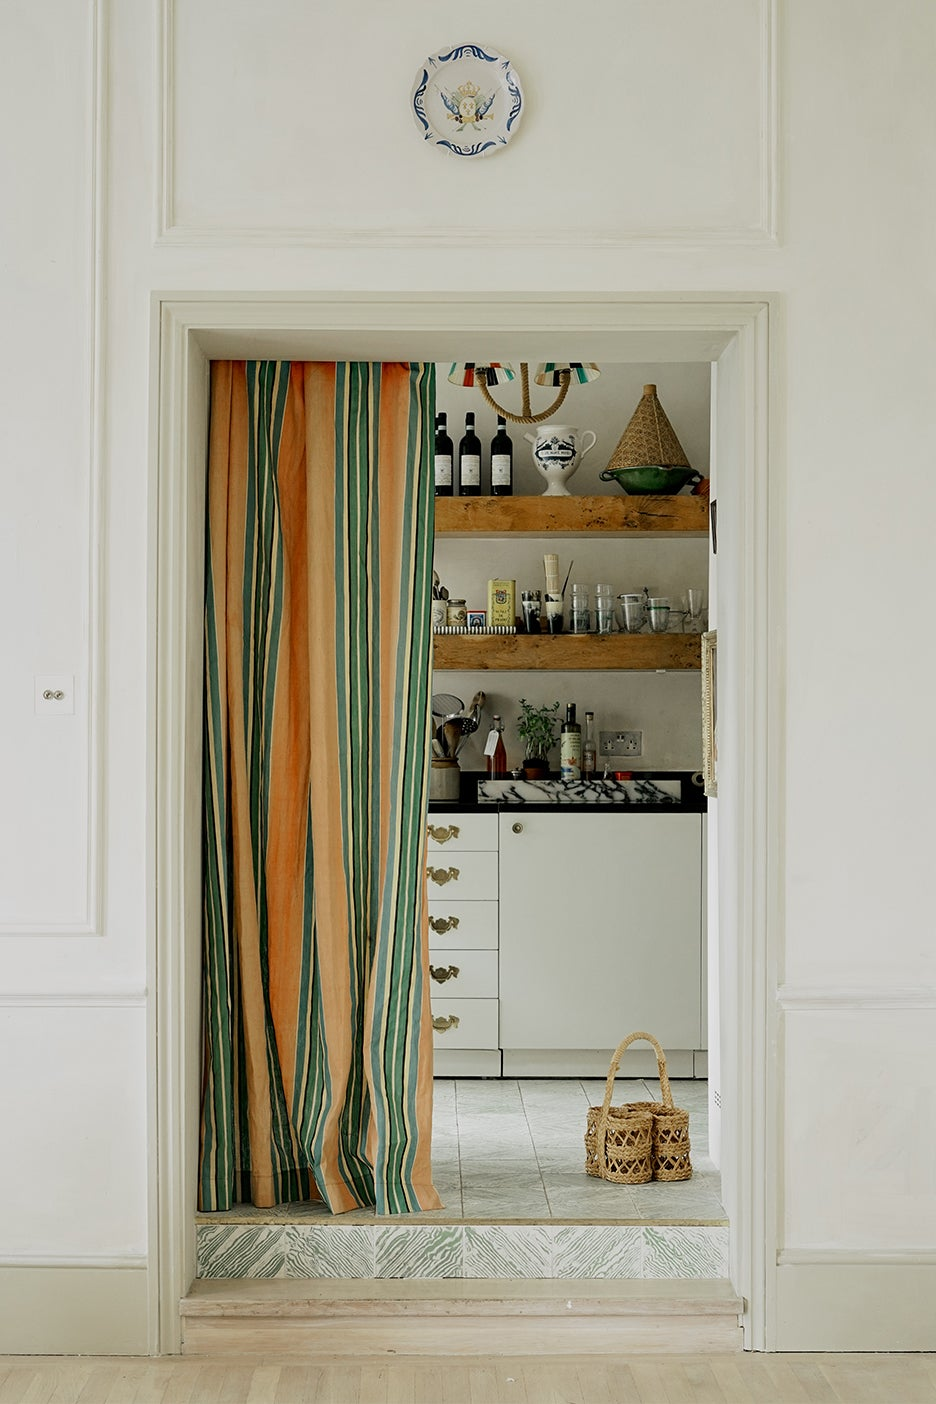 White kitchen behind yellow and green curtain